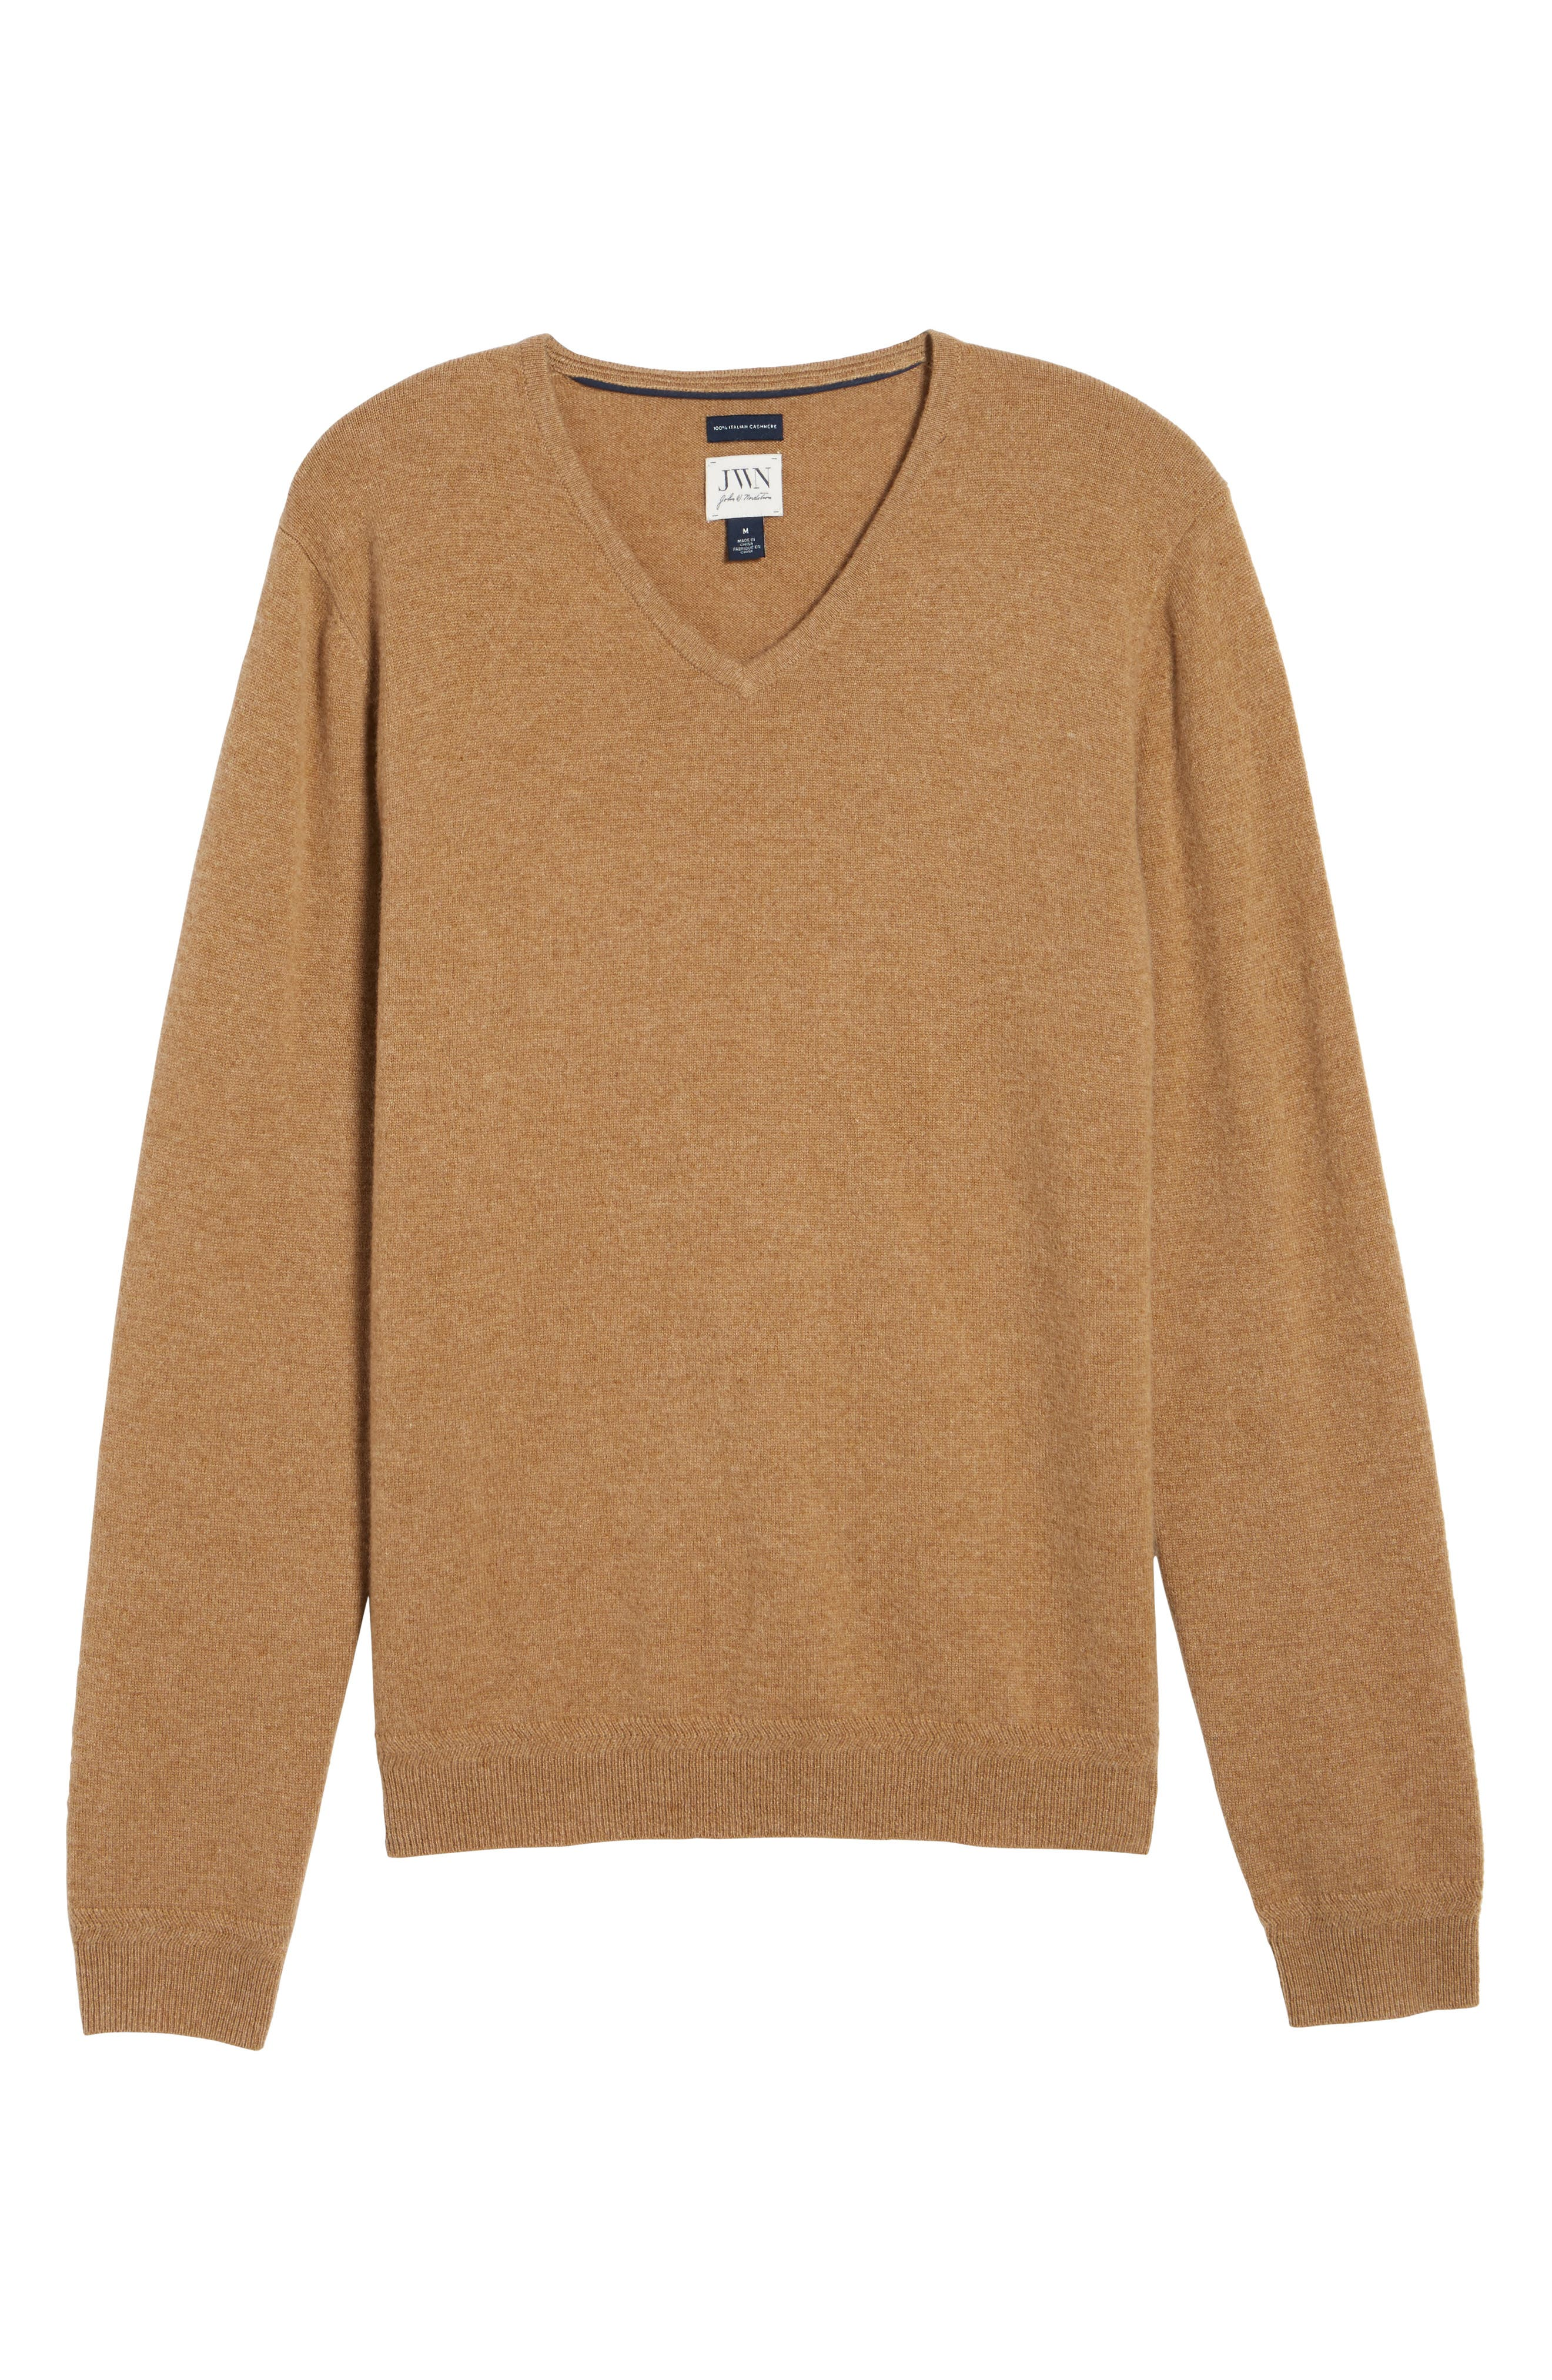 John W. Nordstrom Cashmere V-Neck Sweater,                             Alternate thumbnail 6, color,                             Brown Bear